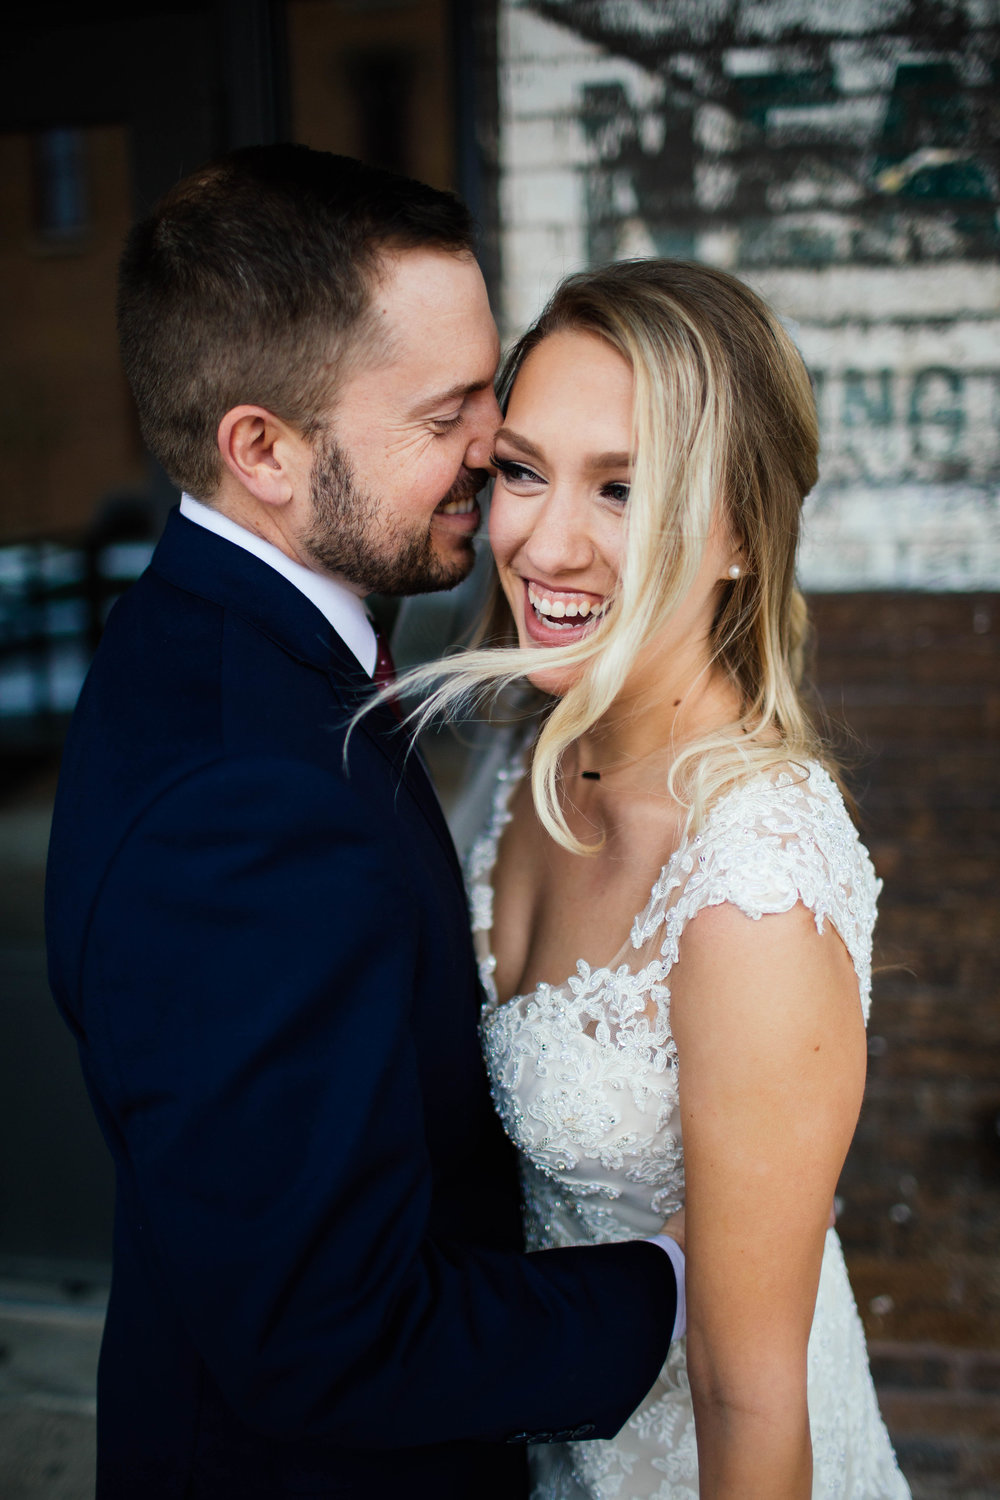 AmandaandJeremyPreviews (22 of 26).jpg